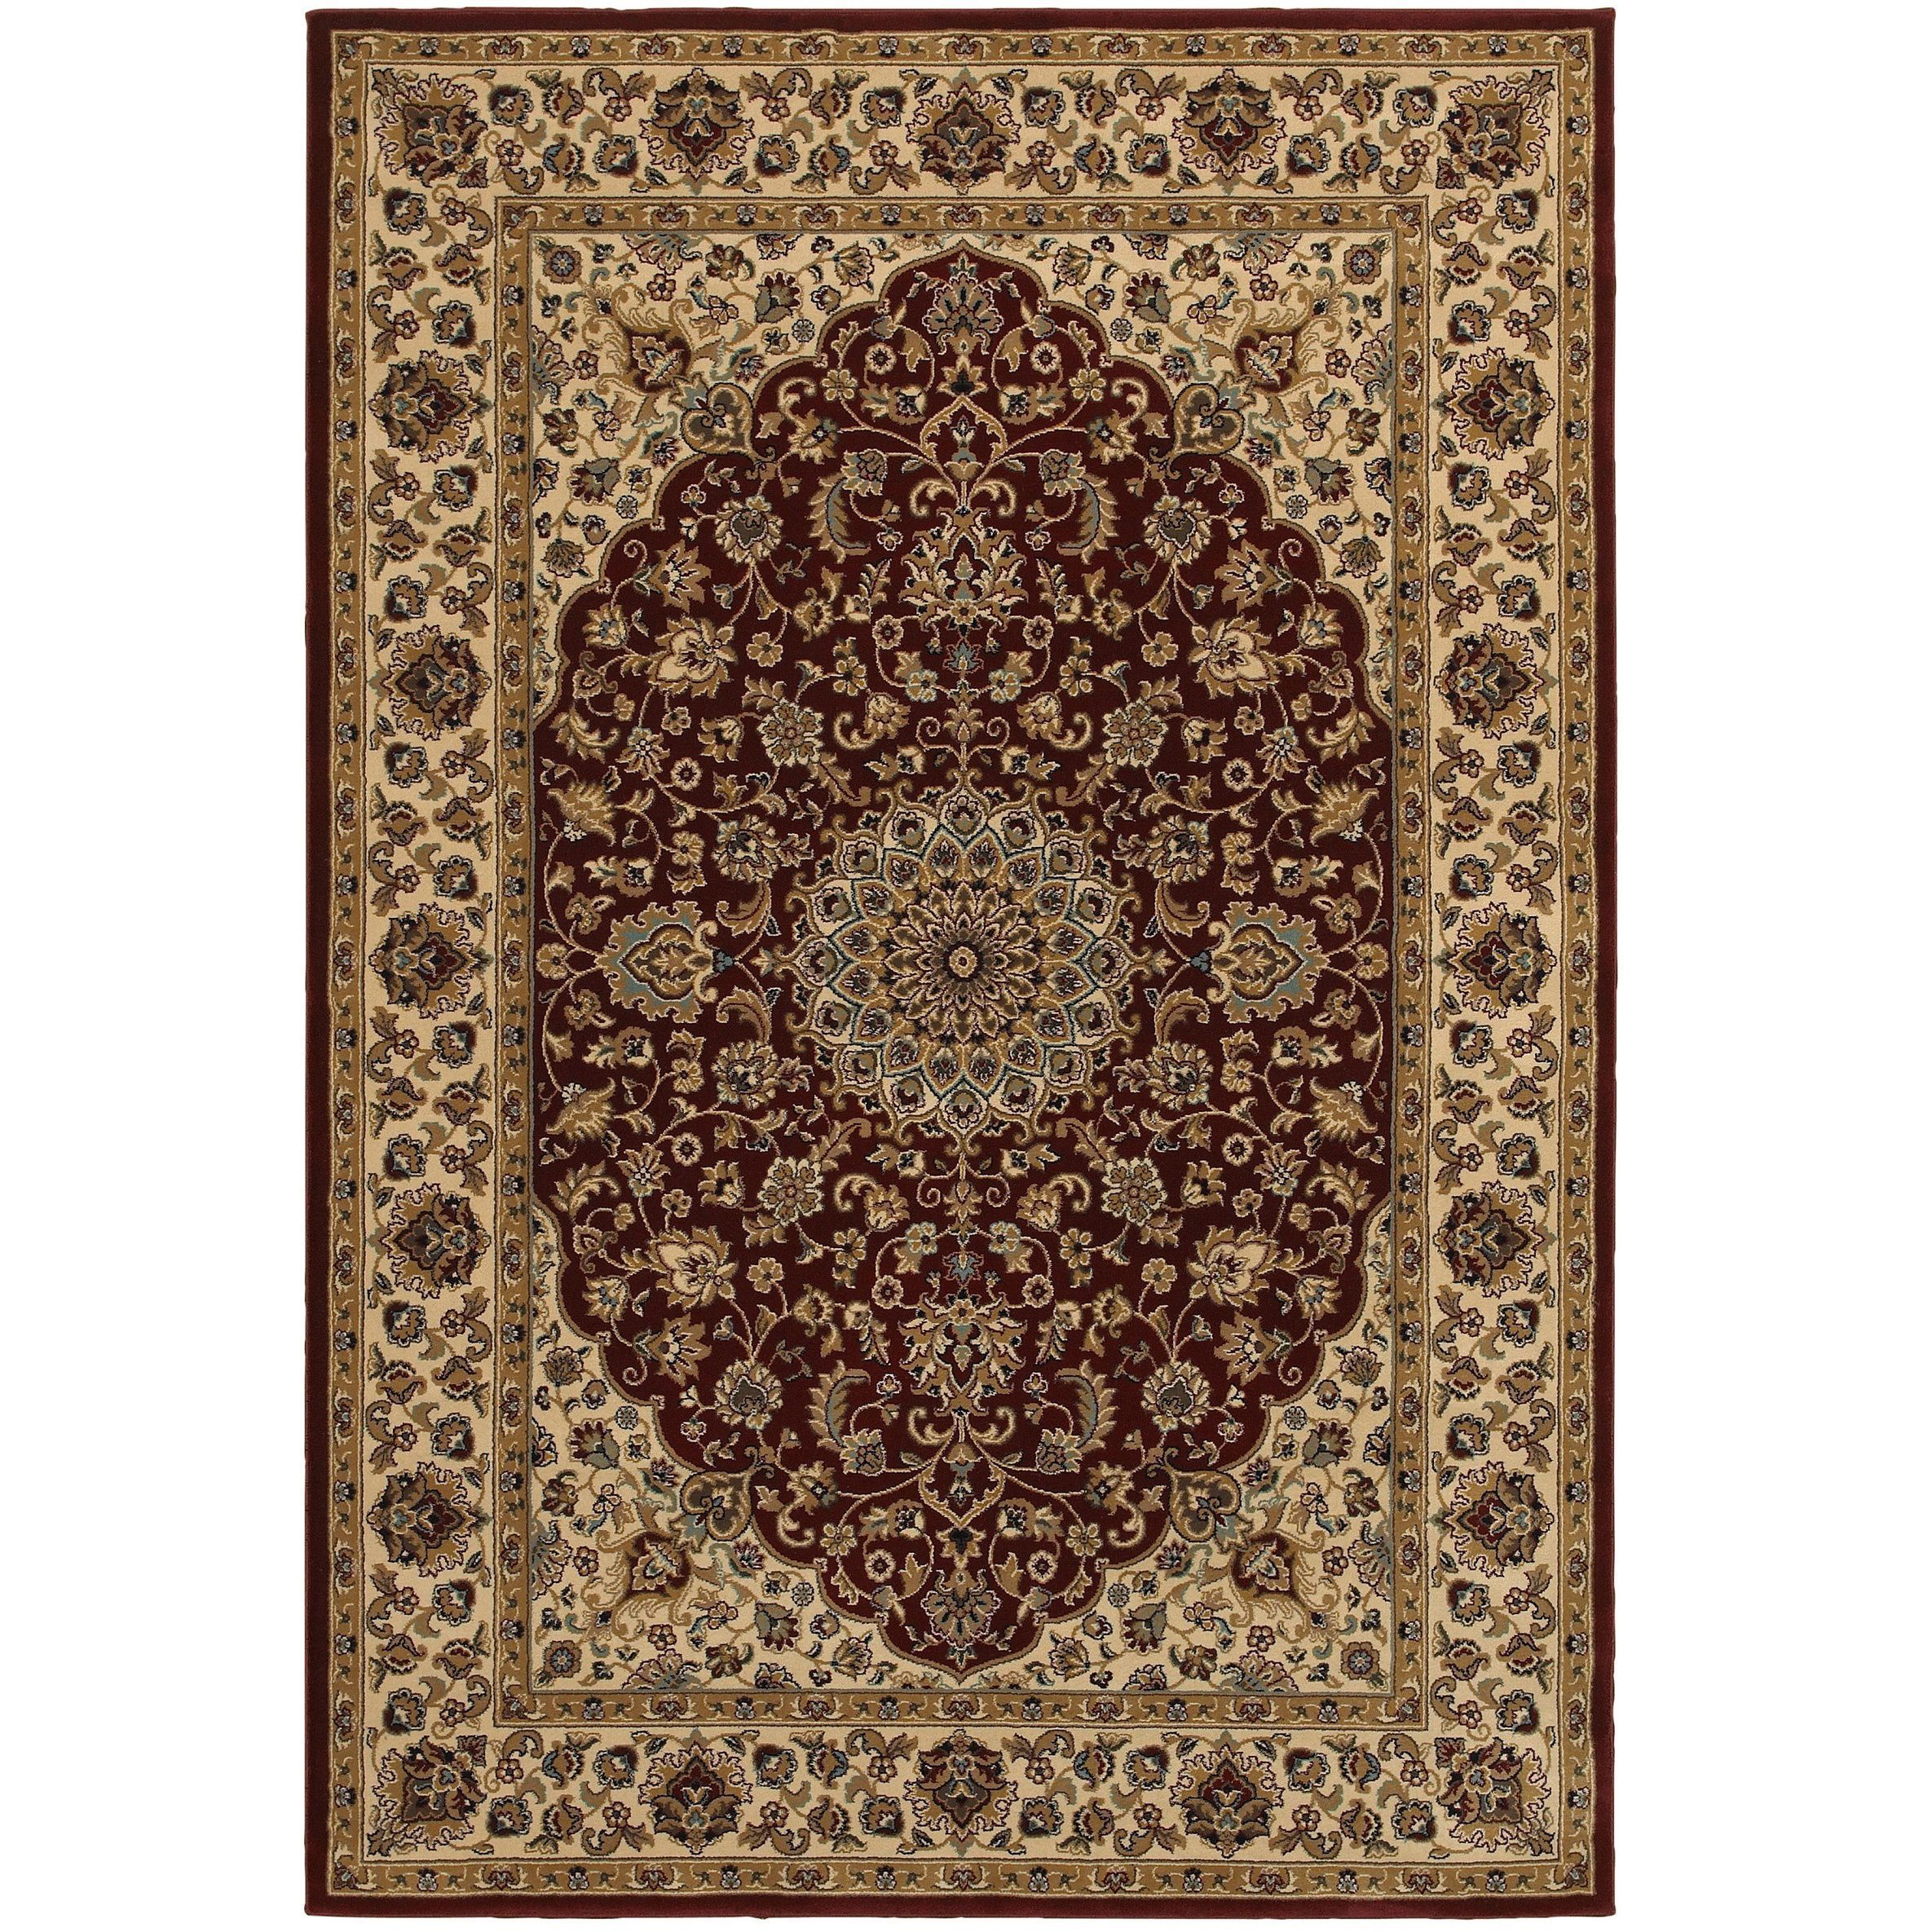 Rizzy Home Chateau Red Abstract Area Rug (6'7 x 9'6) (Red)